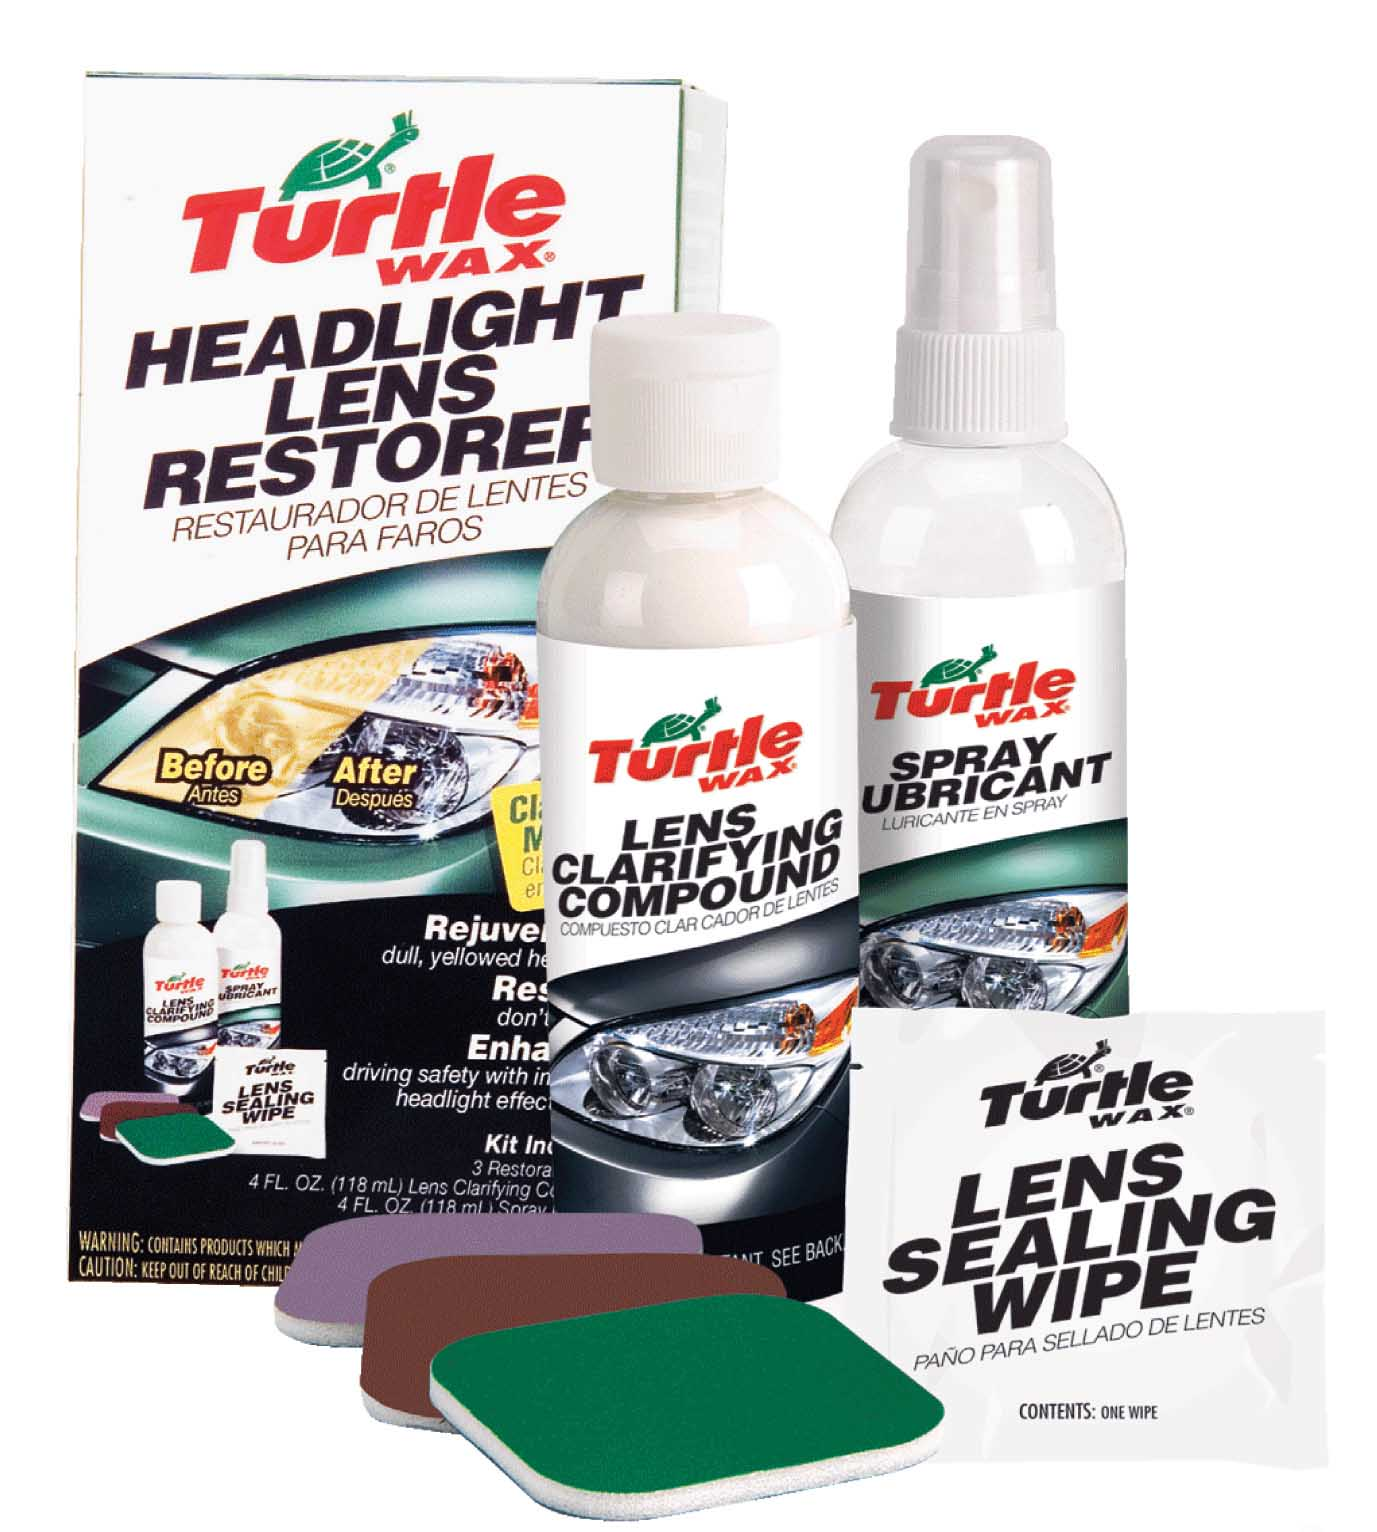 Turtle Wax Headlight Restorer Renovator Kit Repairs Dull & Yellow Lenses FG6690